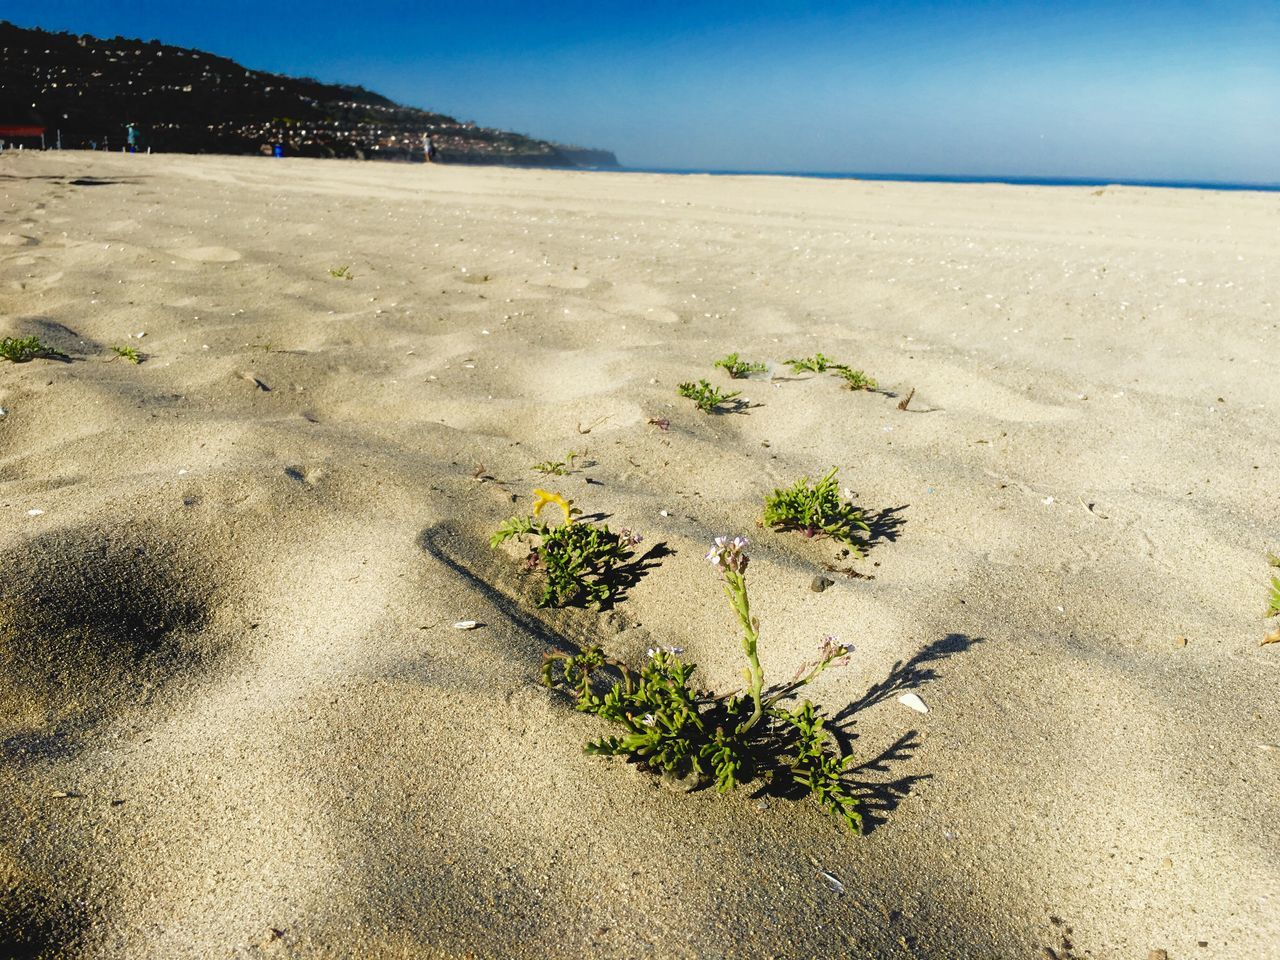 sand, beach, nature, outdoors, tranquility, no people, beauty in nature, landscape, day, sea, scenics, sky